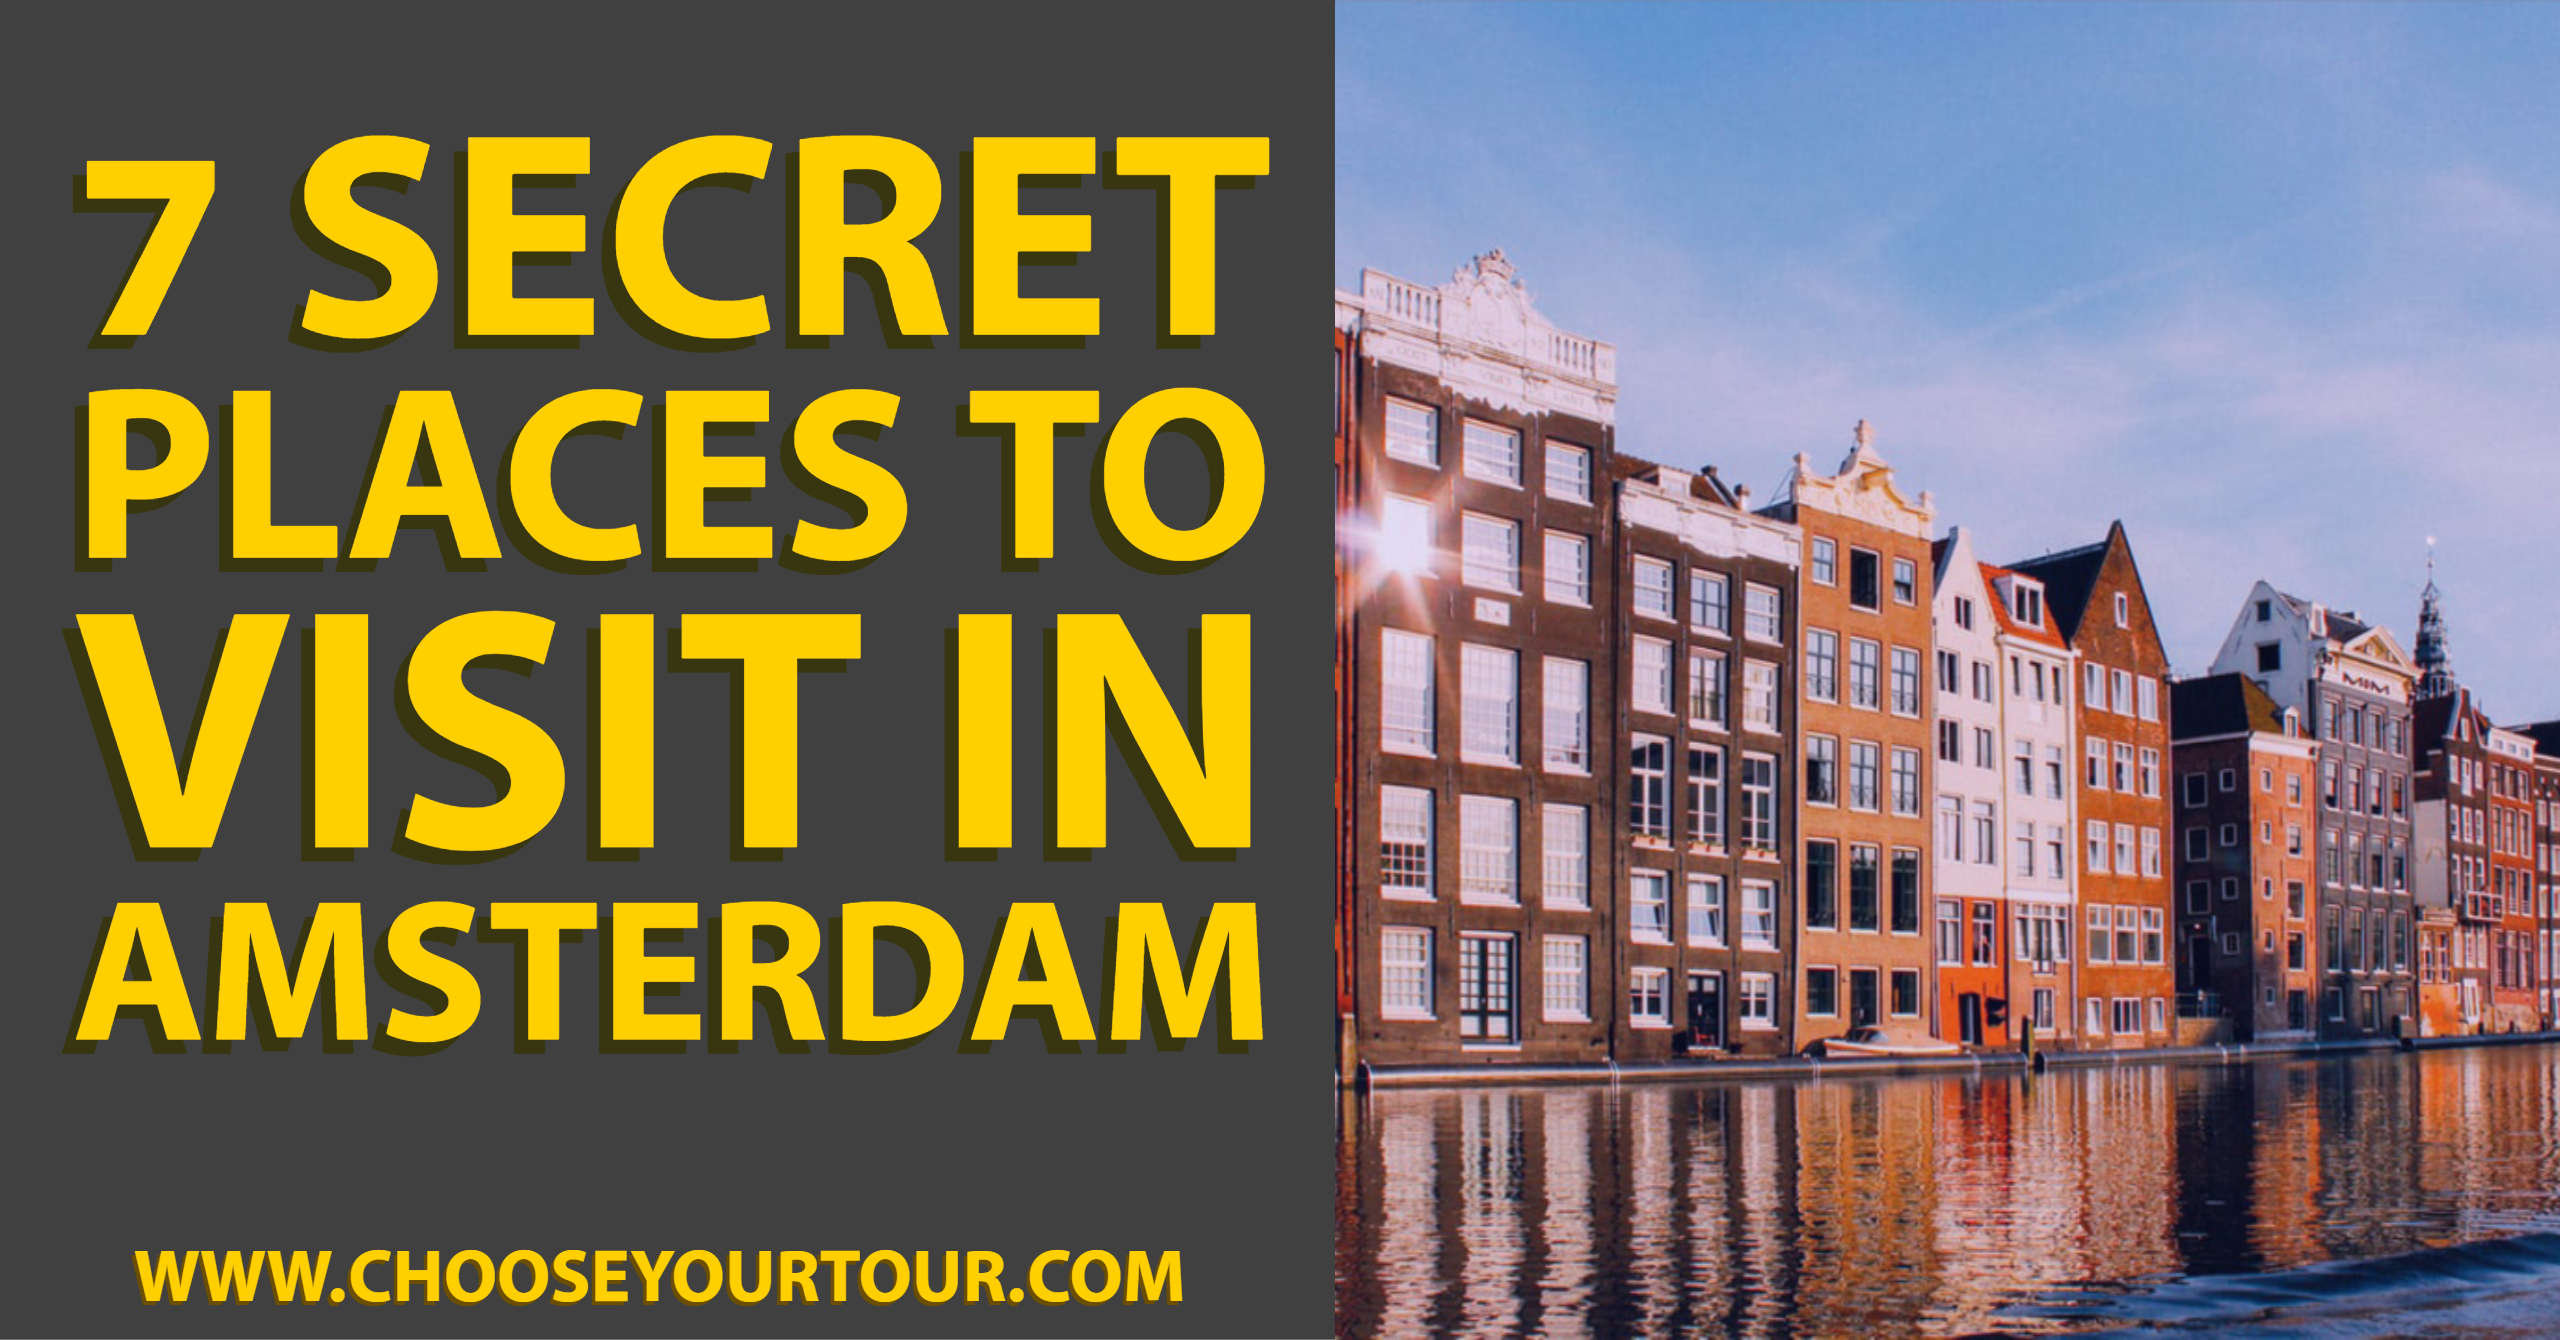 7 Secret Places to Visit in Amsterdam